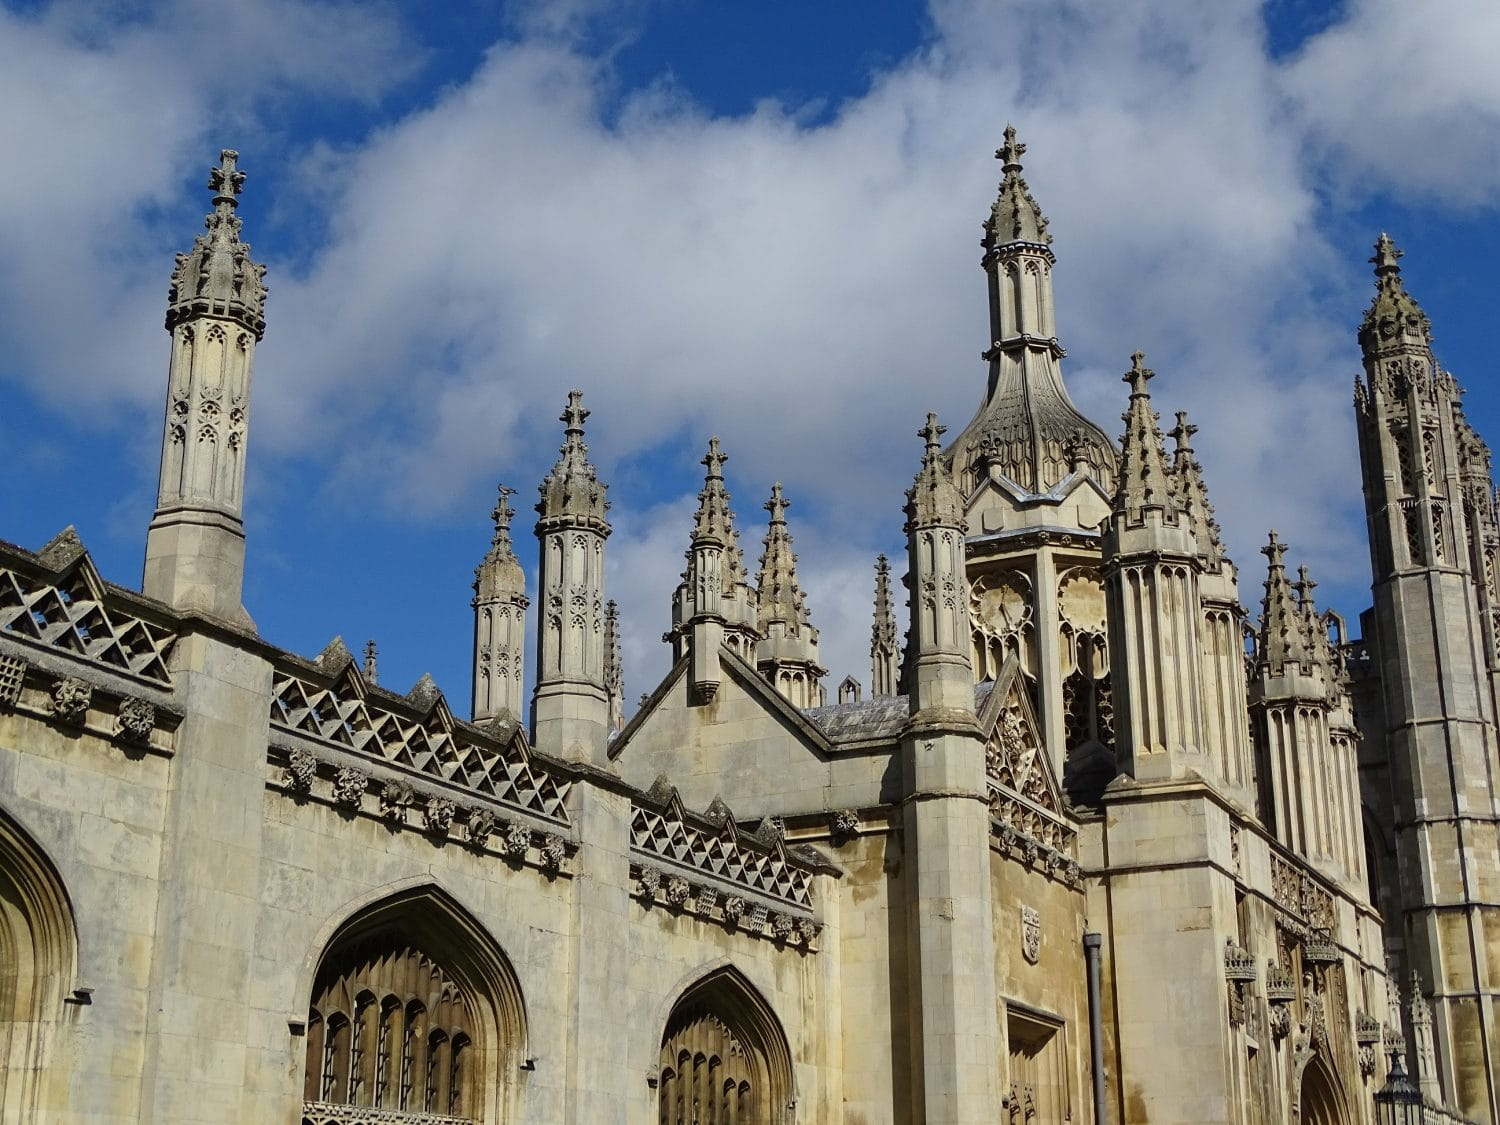 Wander round Cambridge and admire its stunning architecture